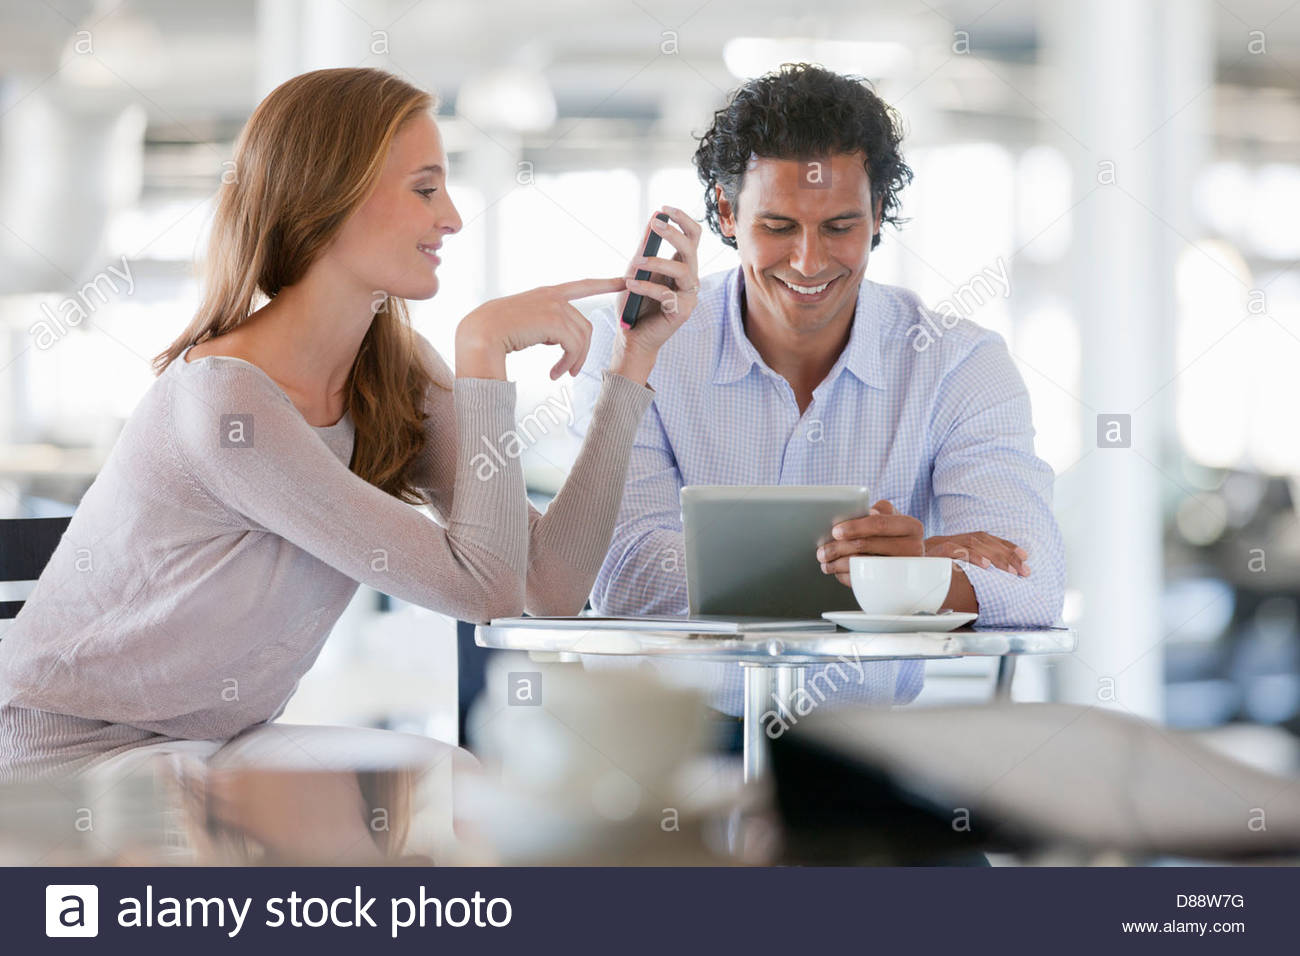 Couple using cell phone and digital tablet at cafe table - Stock Image